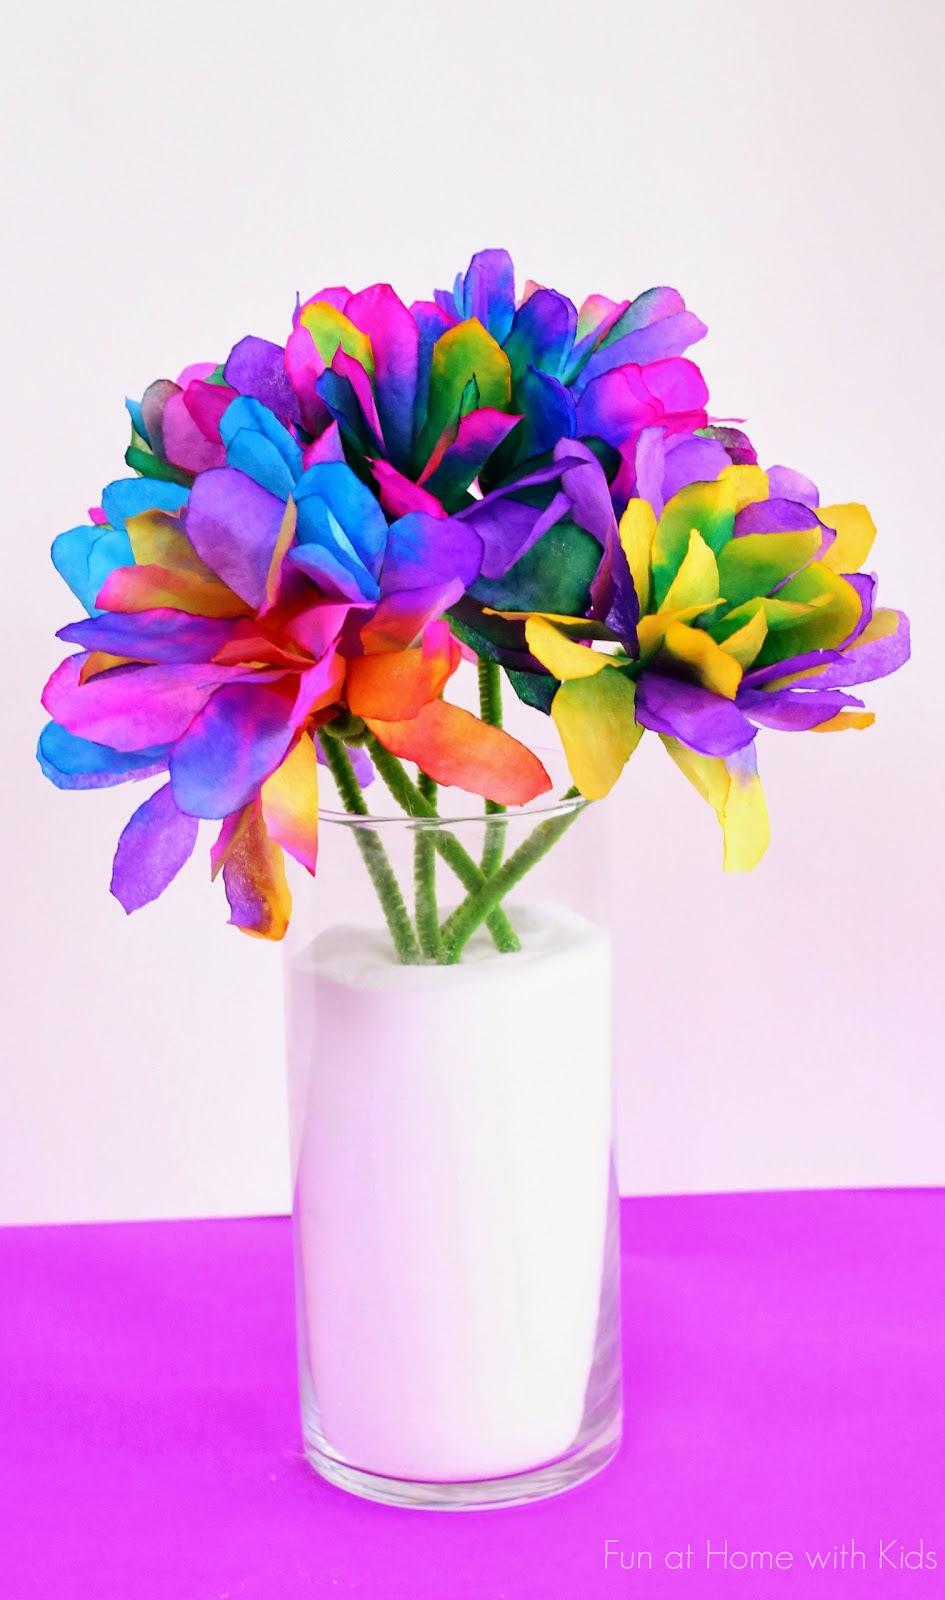 A new technique for making incredibly vibrant and bright coffee filter flowers from Fun at Home with Kids